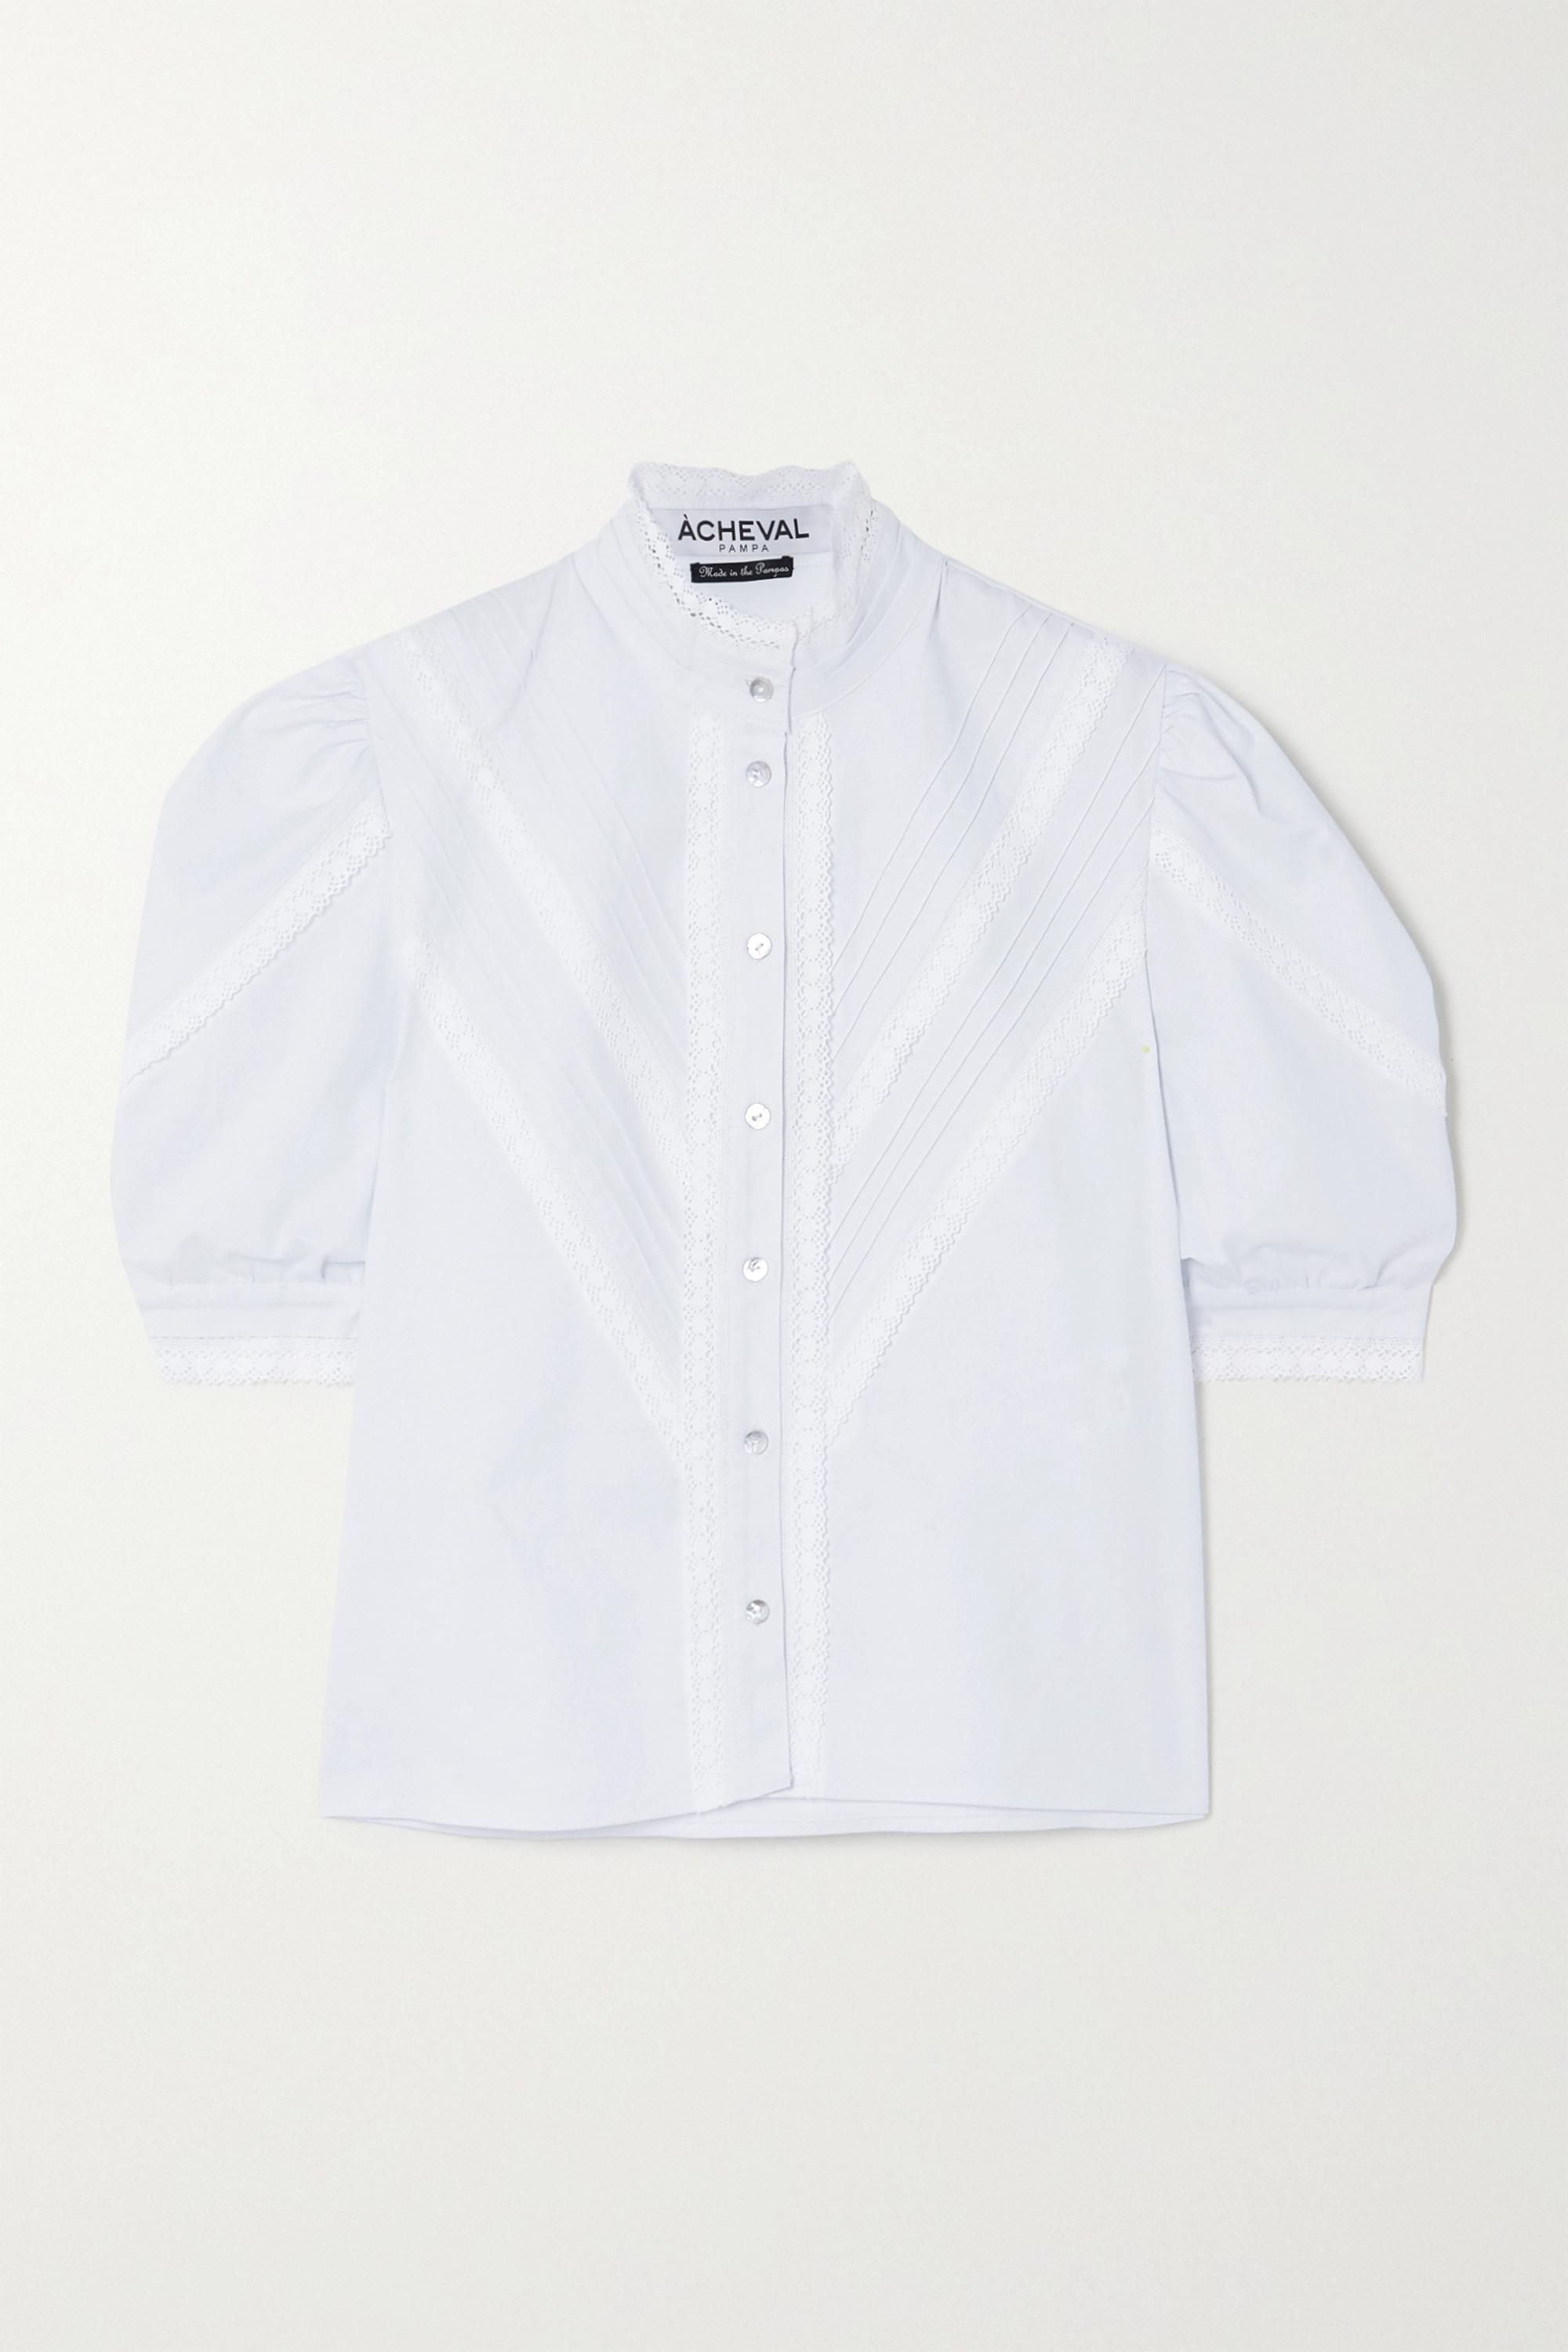 AP Lace Shirt White